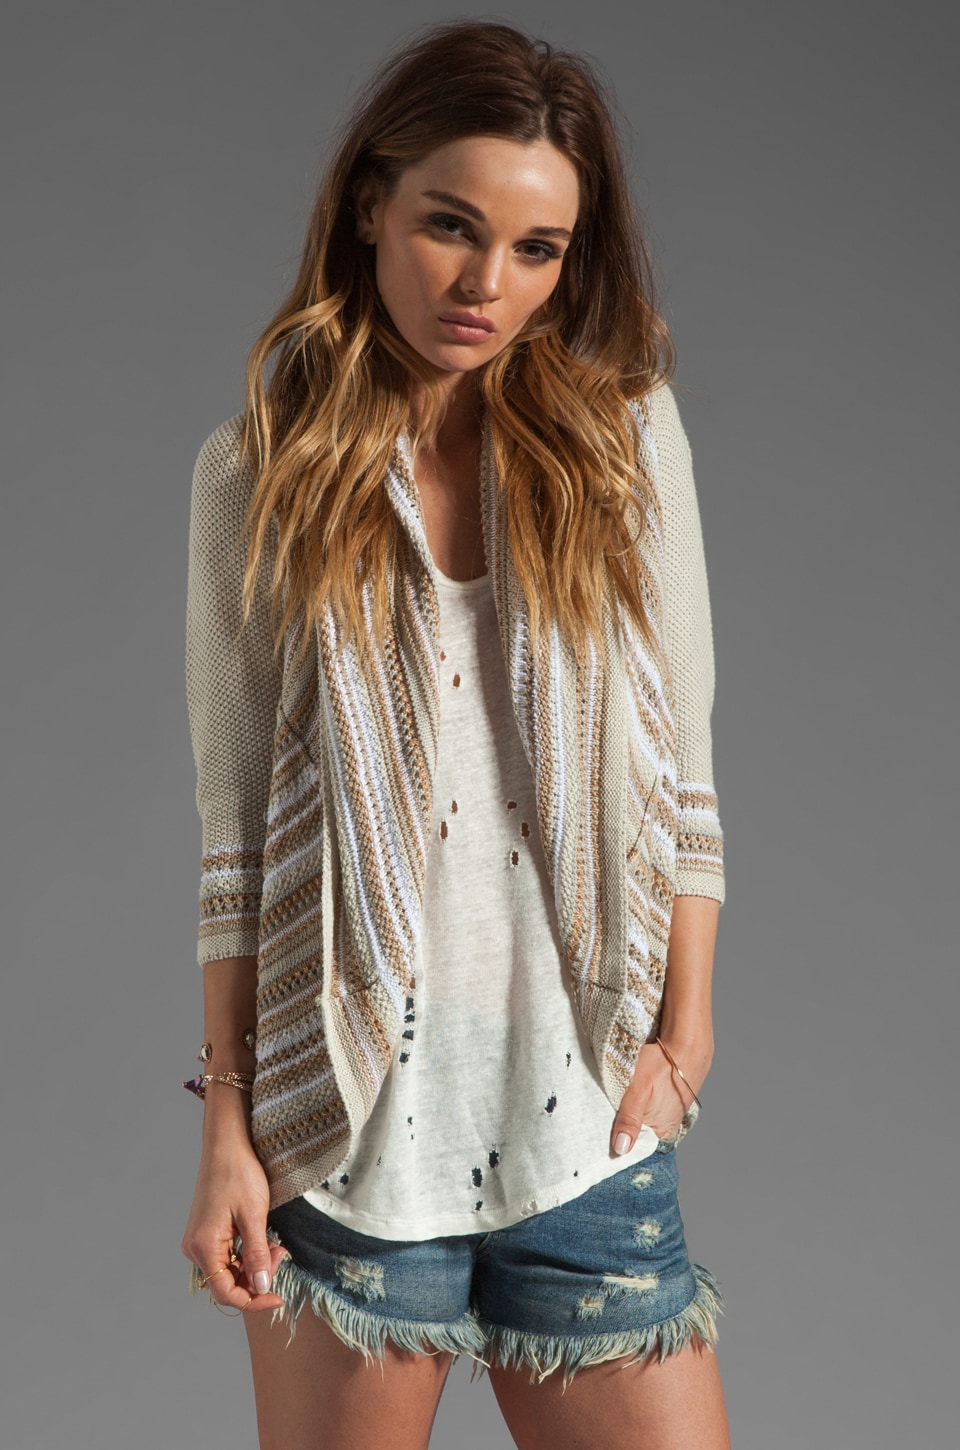 Autumn Cashmere Multi Stitch Drape Sweater in Neutral Combo